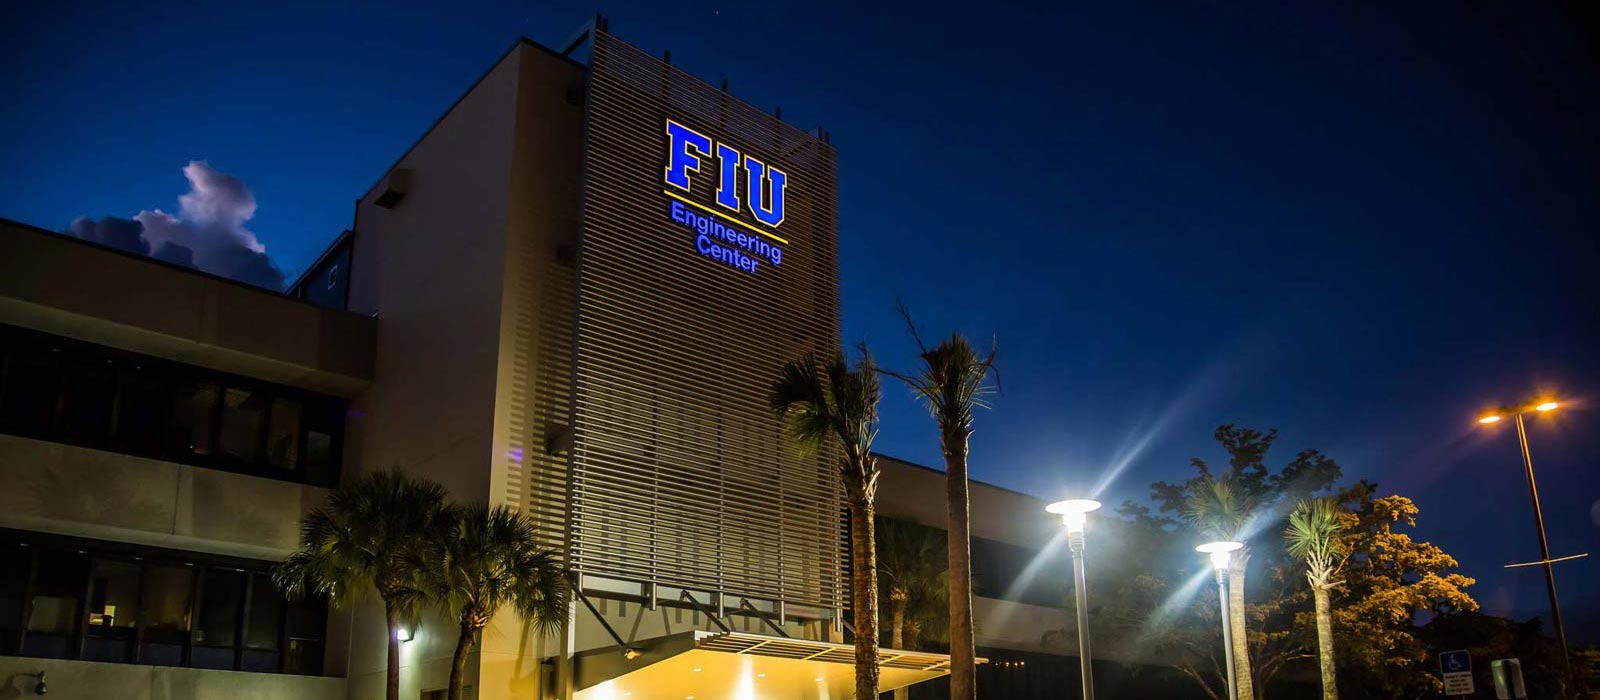 services-eic-fiu-college-engineering-computing-building-1600x700